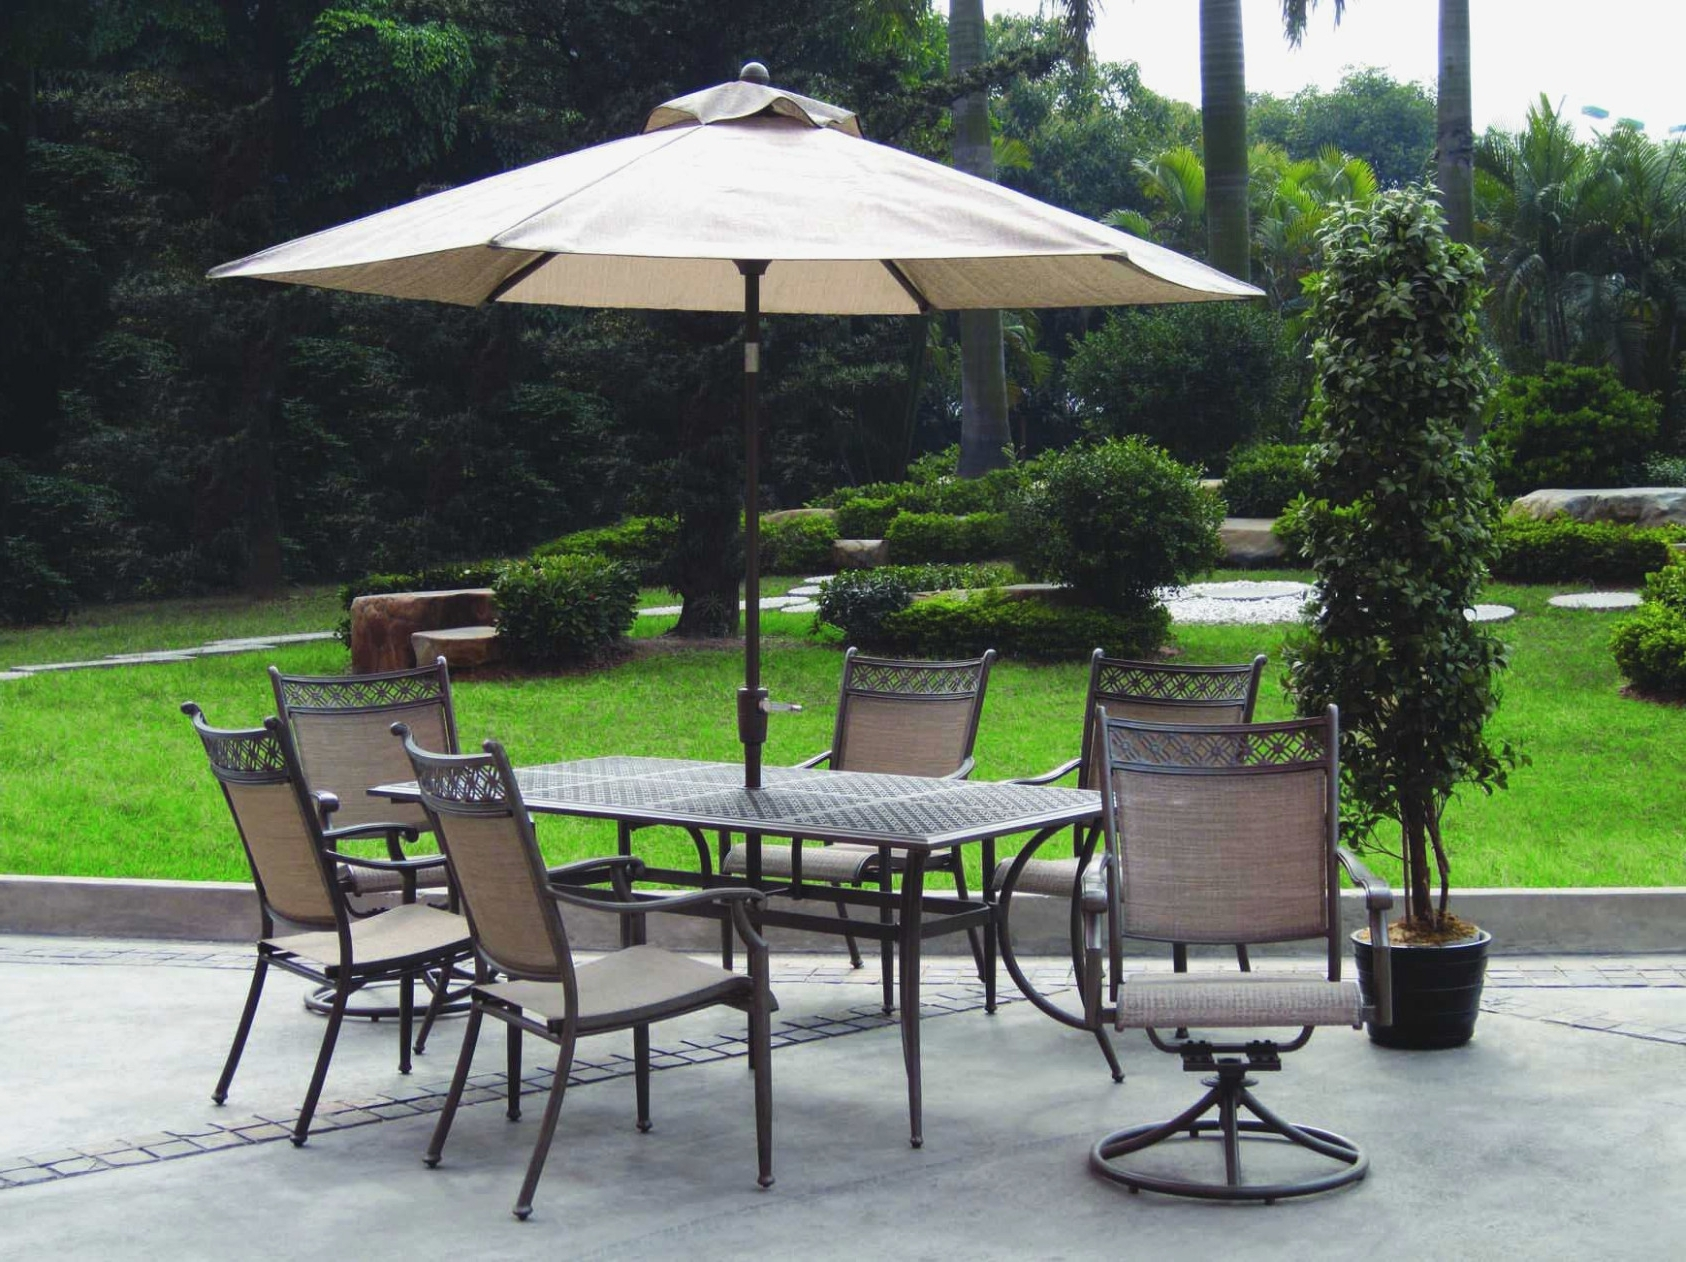 Fashionable Enchanting Cheap Patio Umbrellas With Furniture Alluring Collection With Regard To Cheap Patio Umbrellas (View 19 of 20)